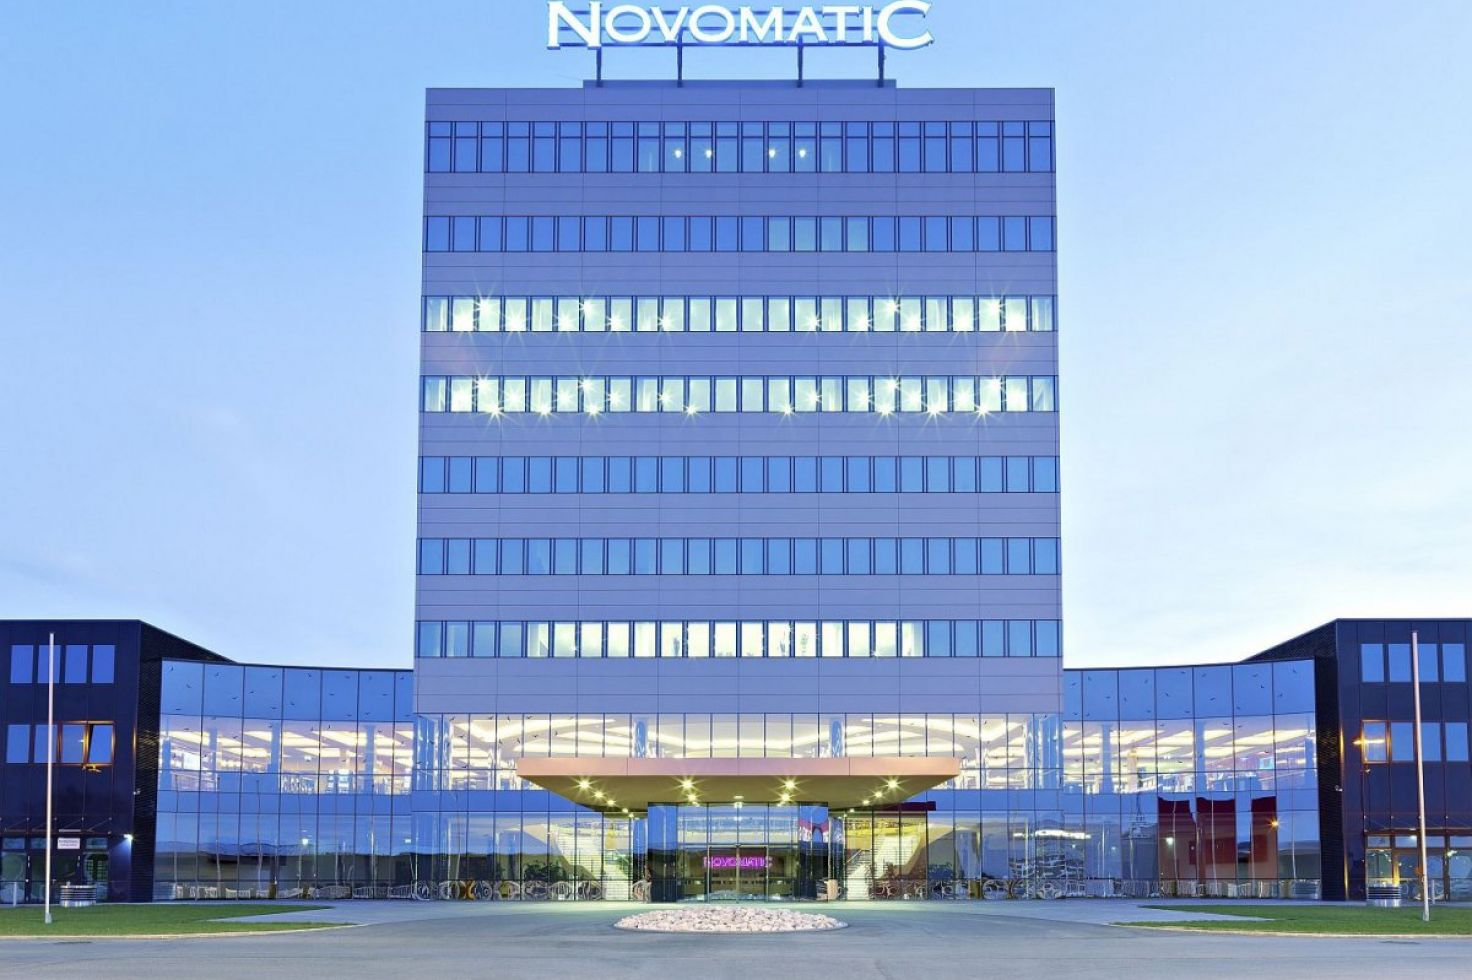 How NOVOMATIC Plans to Combat the Spread of COVID-19 Among Staff and Consumers